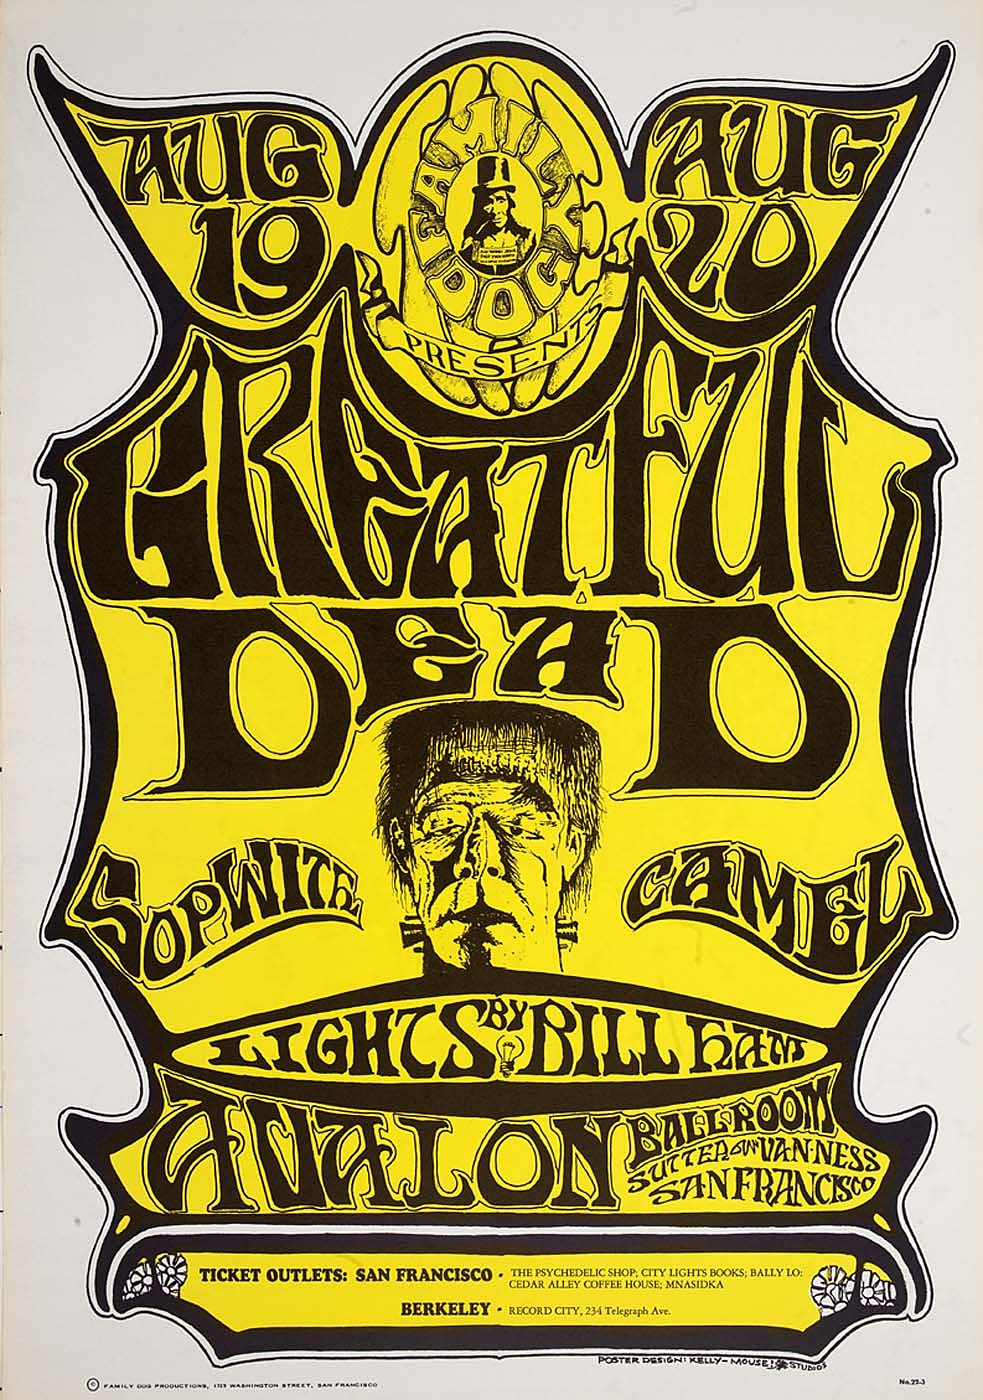 images for Greatful Dead (Grateful Dead, Sopwith Camel...Avalon Ballroom, San Francisco, California 8/19/66-8/20/66)